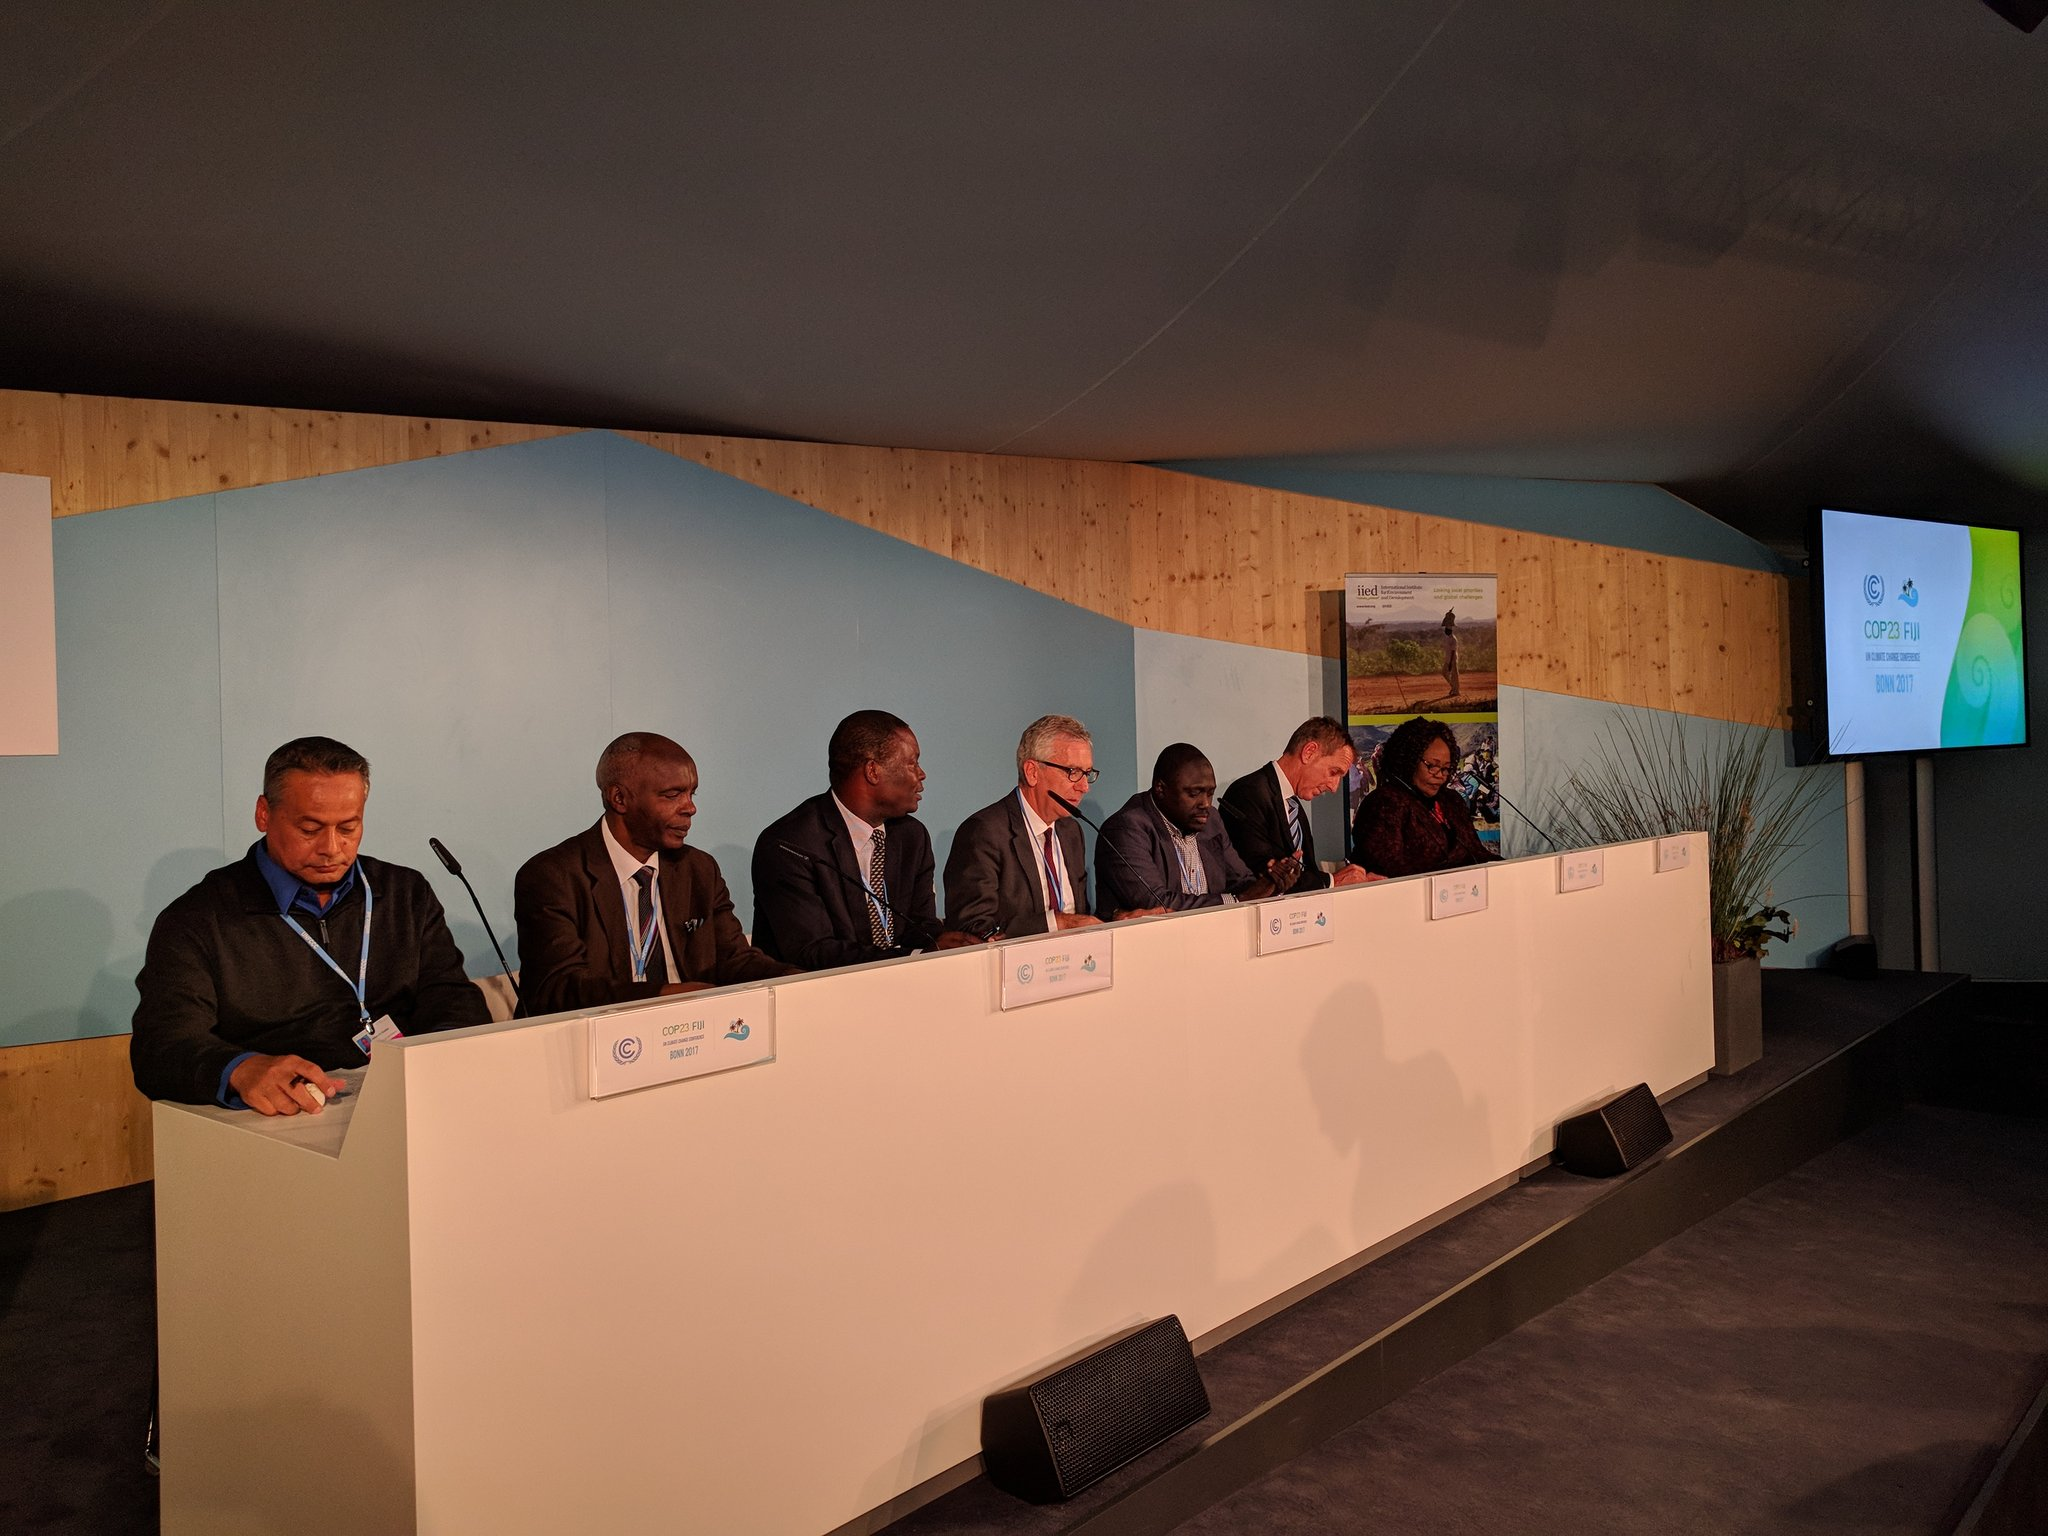 Kicking off the IIED and @both_ends #COP23 side event now. Minister from the Gambia giving the intro now. https://t.co/OCy3D8vKhT